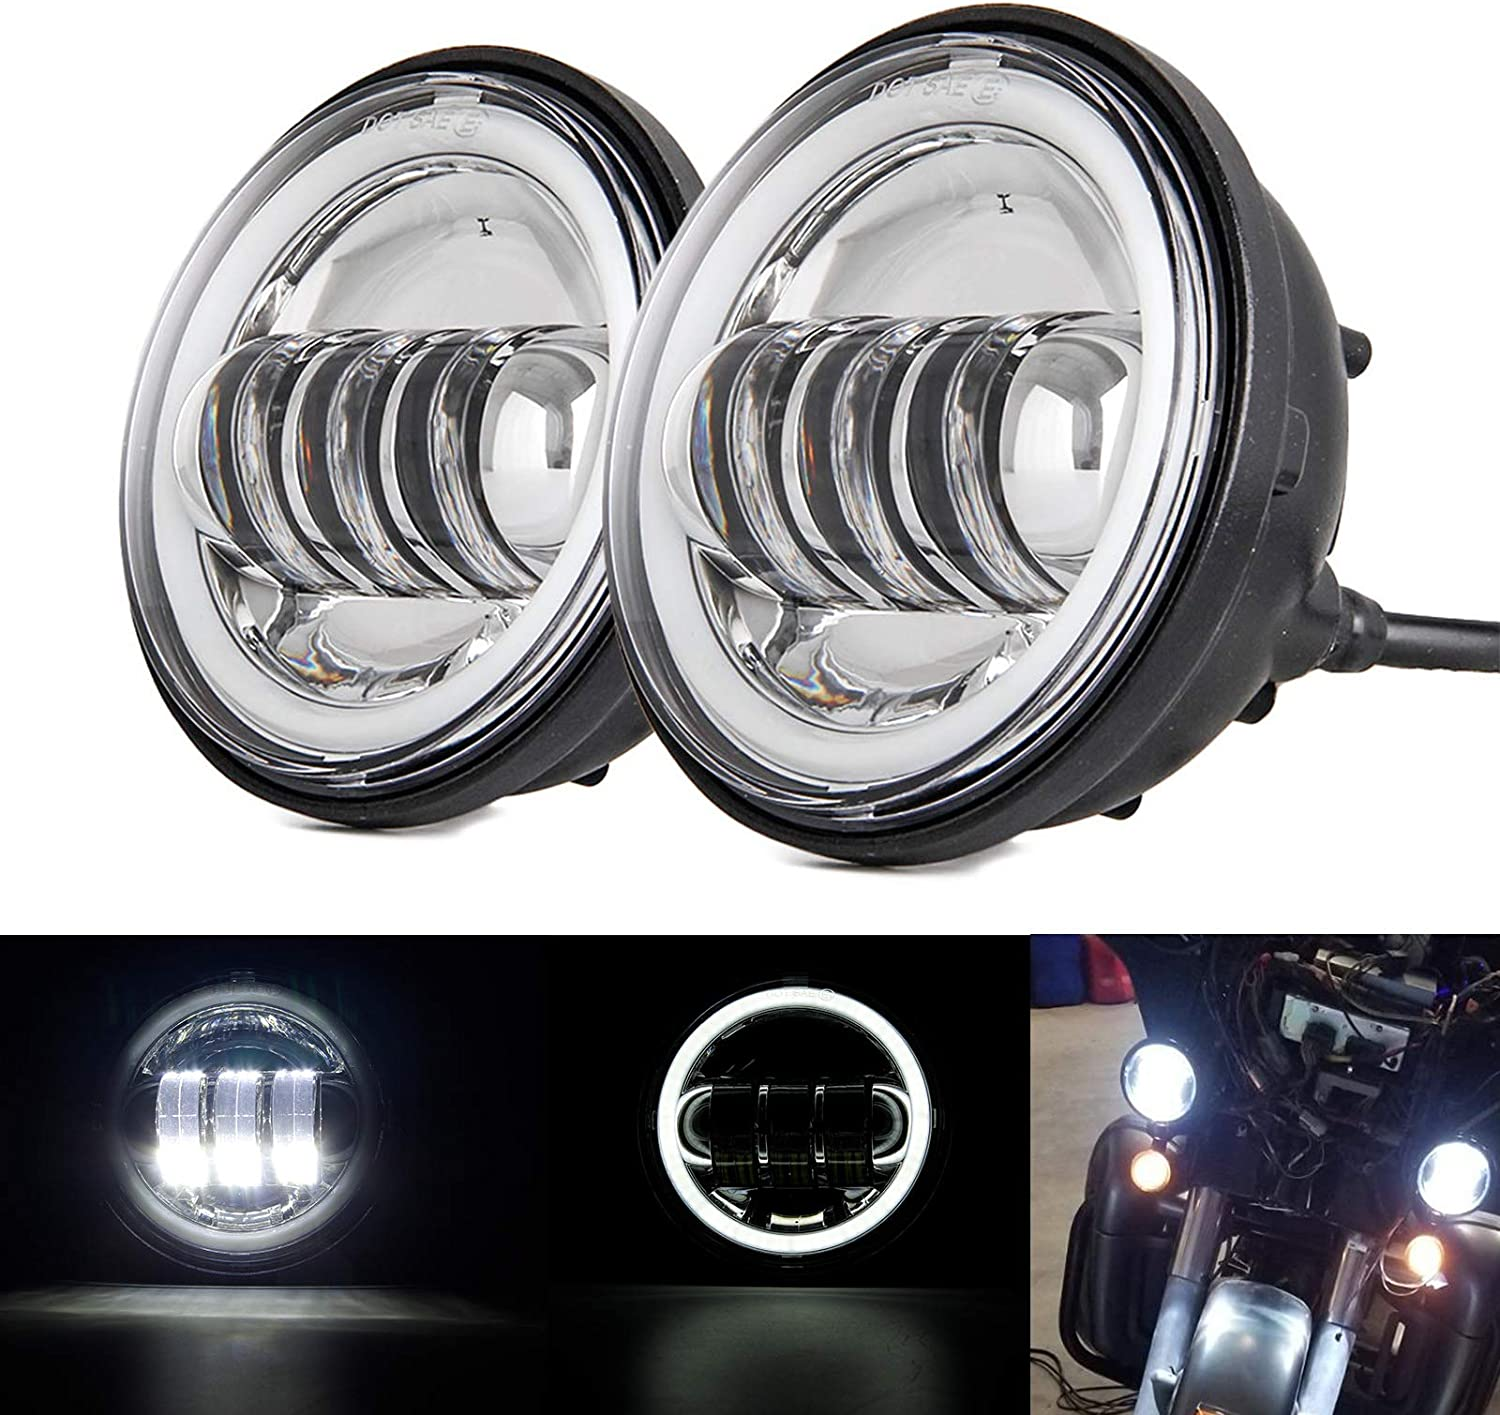 Autokun 4.5 Inch Led Fog Lights with White Halo Ring Angel Eyes 1 Pair 4.5 Passing Lamps DRL bulb for Har-ley David-son Daymarker Harley Fog Lamp